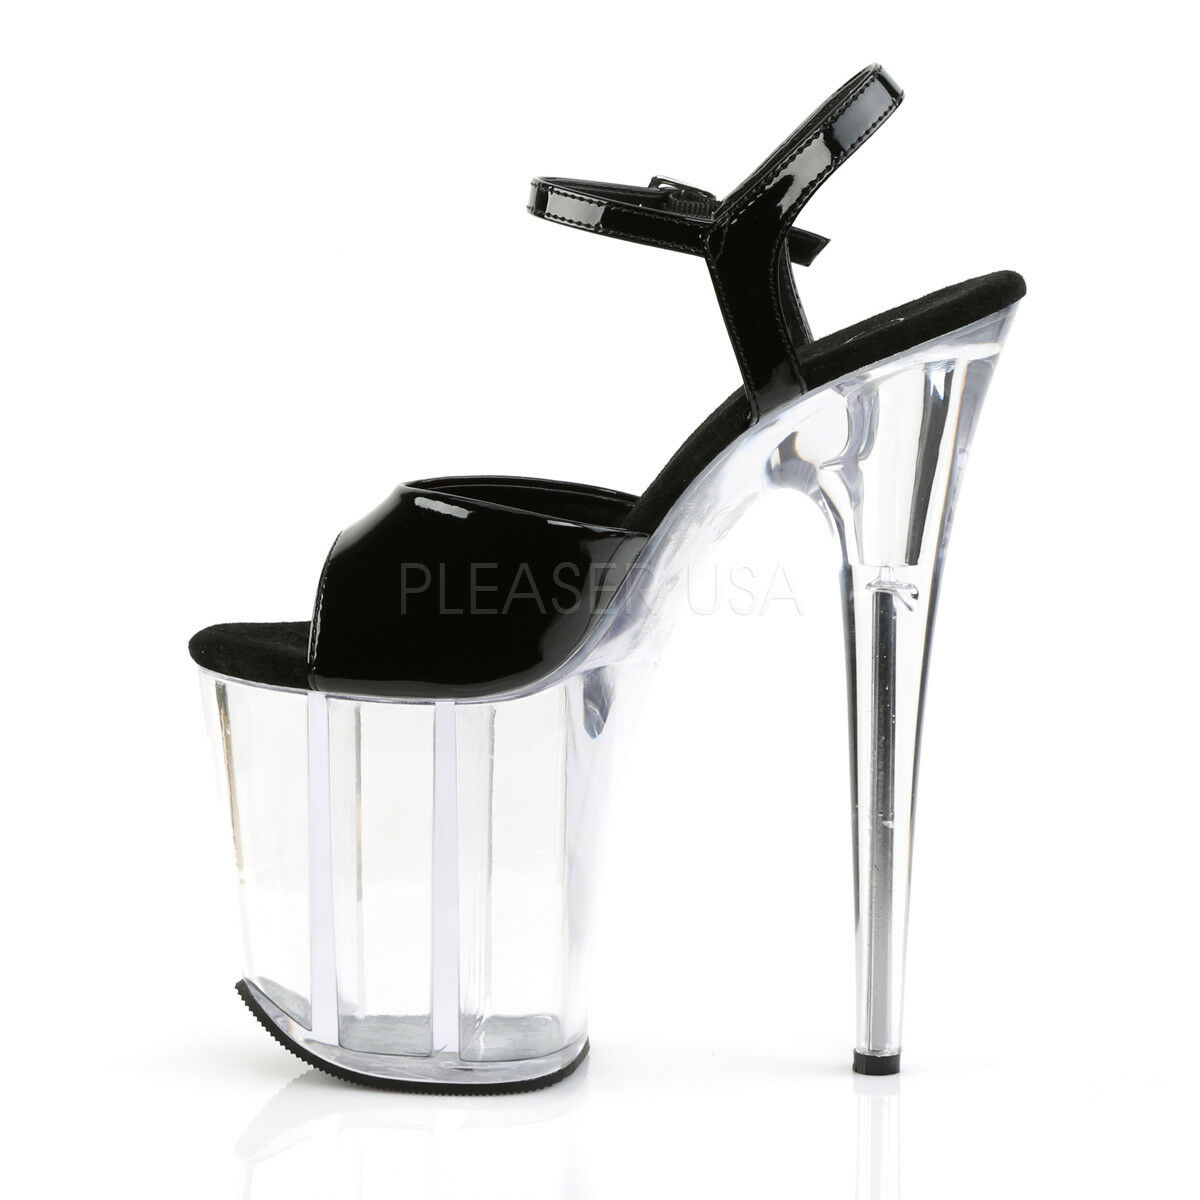 PLEASER FLAMINGO-809 BLACK PATENT     CLEAR PLATFORM POLE DANCING STILETTO SANDALS de90ea